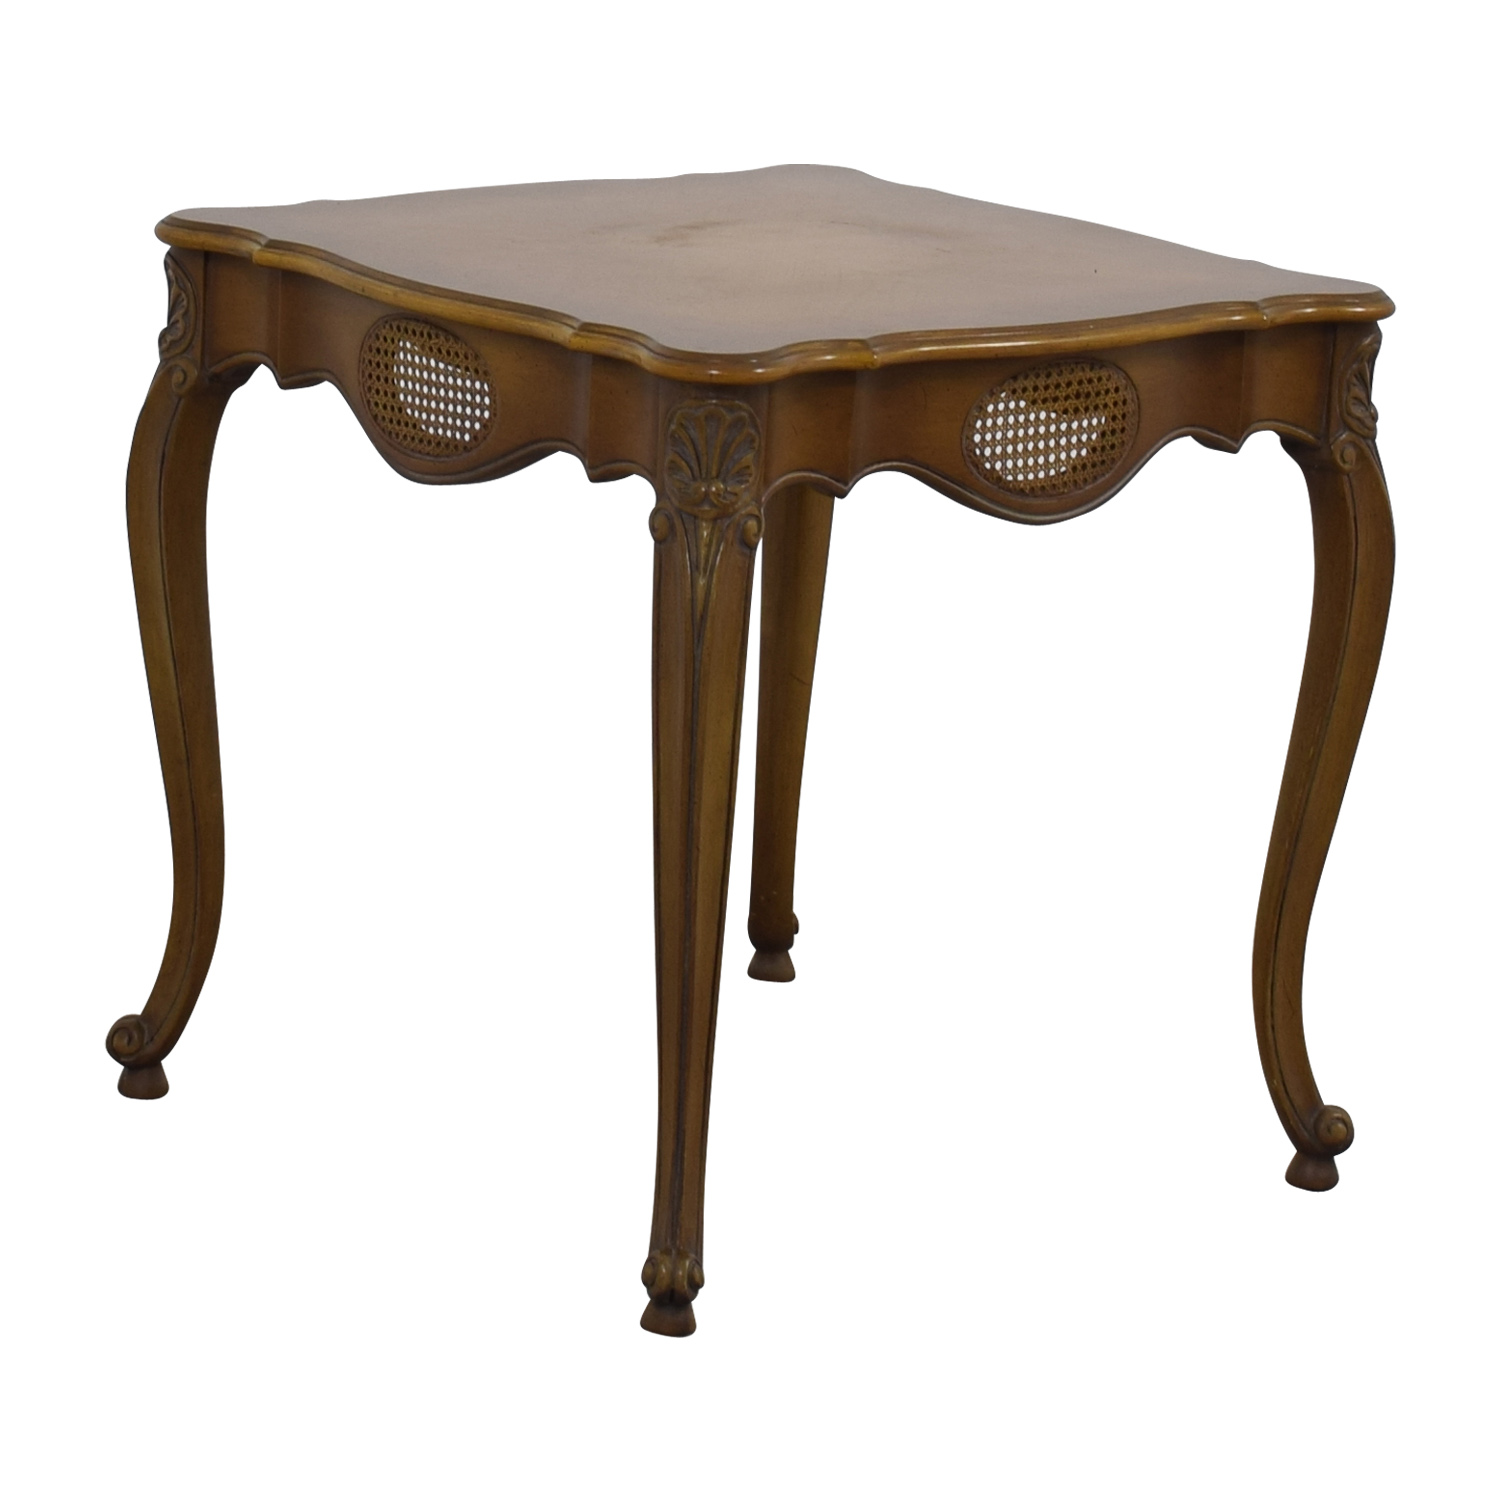 Vintage French Provincial End Table / Tables